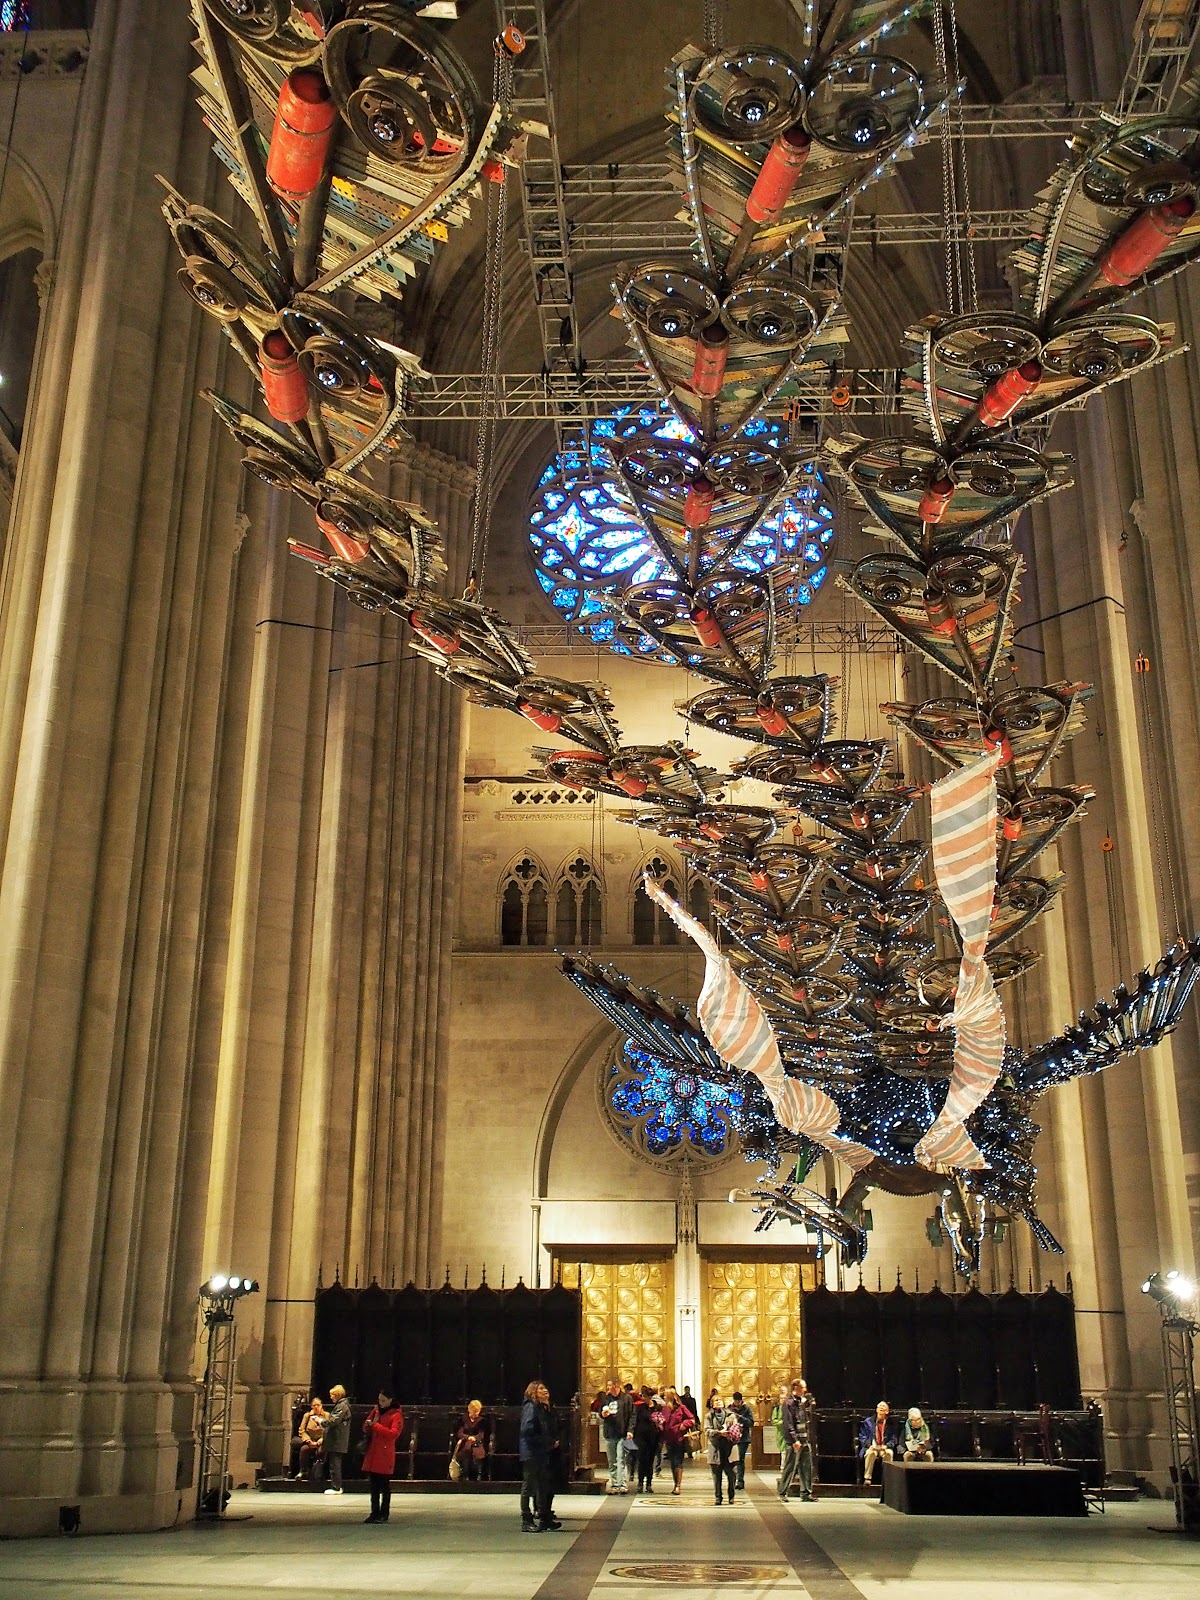 Feng #Feng #phoenix #xubing #stjohnthedivinecathedral #art #nyc ©2014 Nancy Lundebjerg